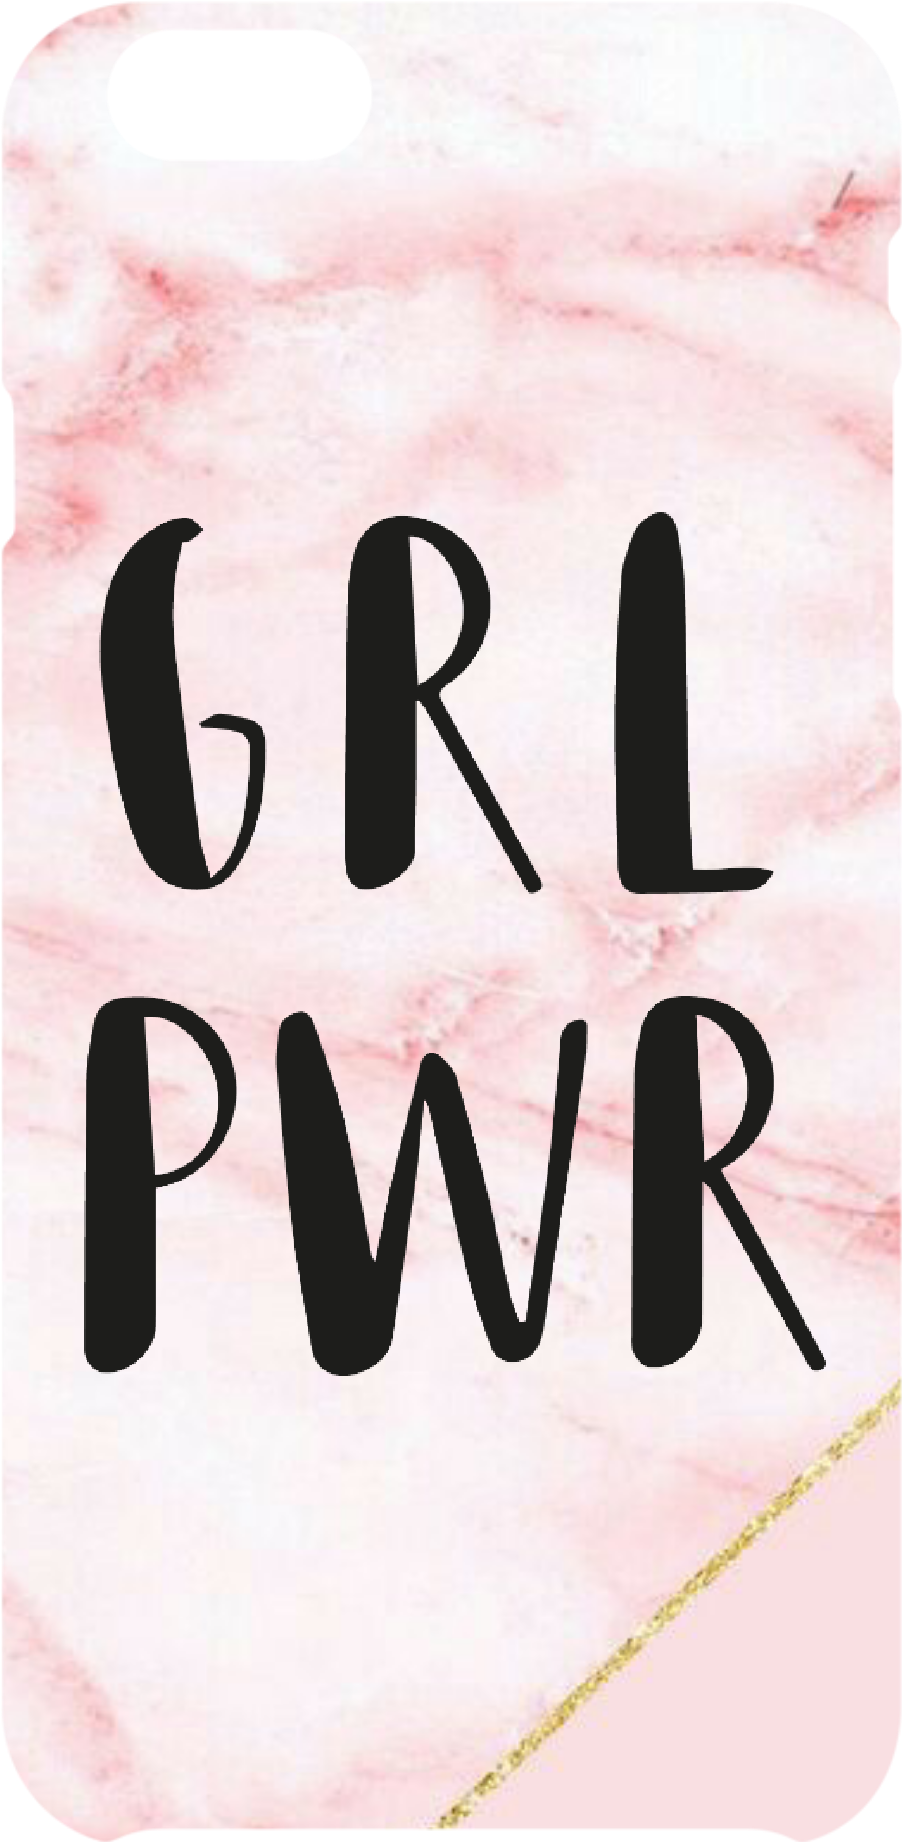 cover Grl pwr